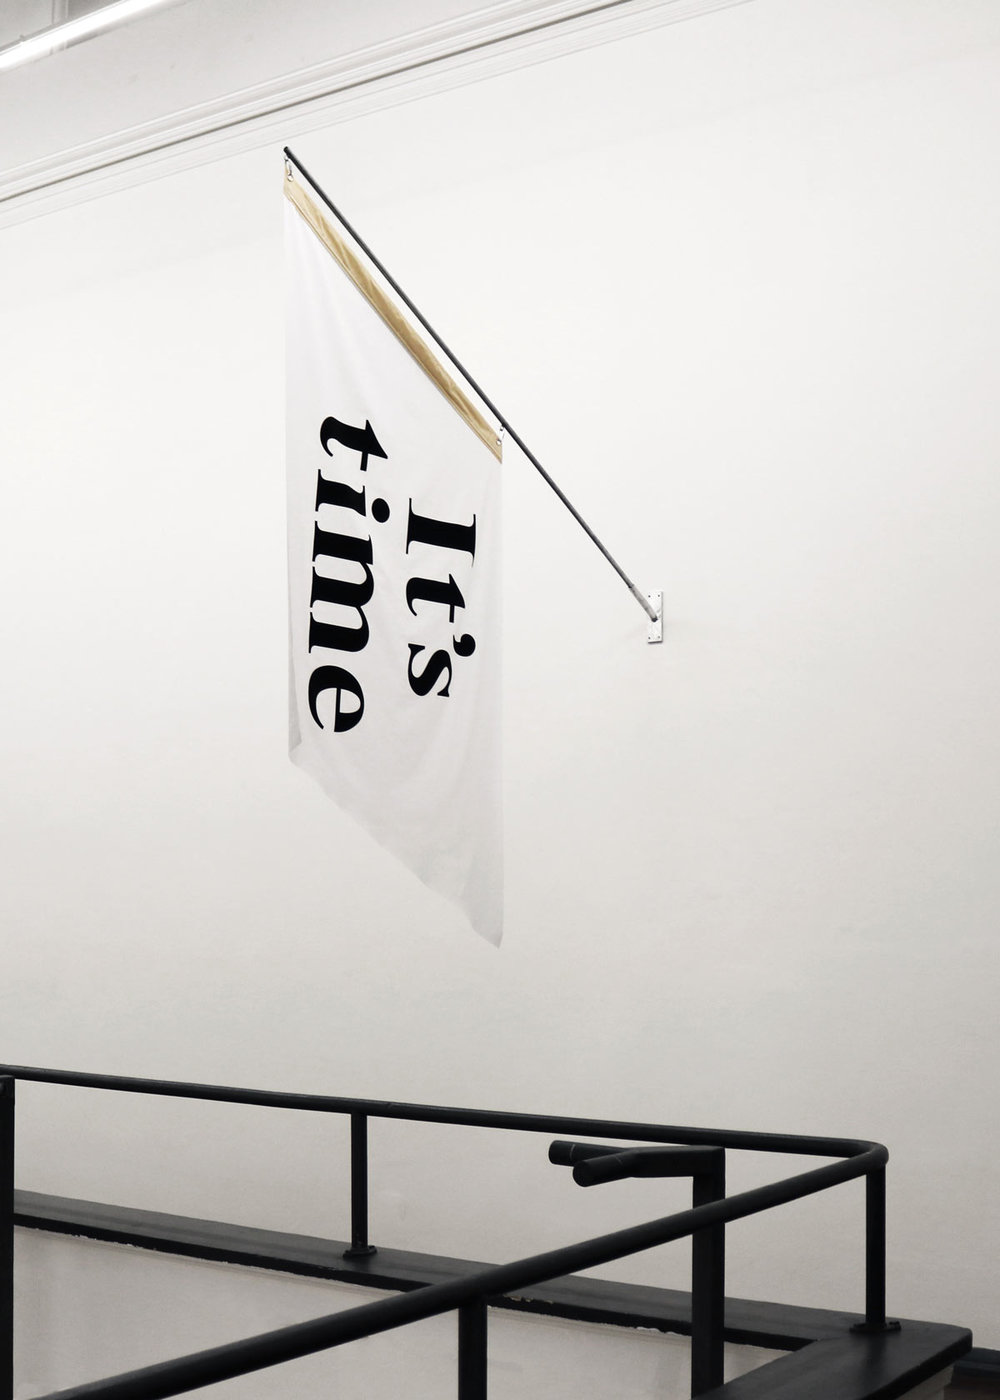 'Flag 3' (2018) on display at PICA.